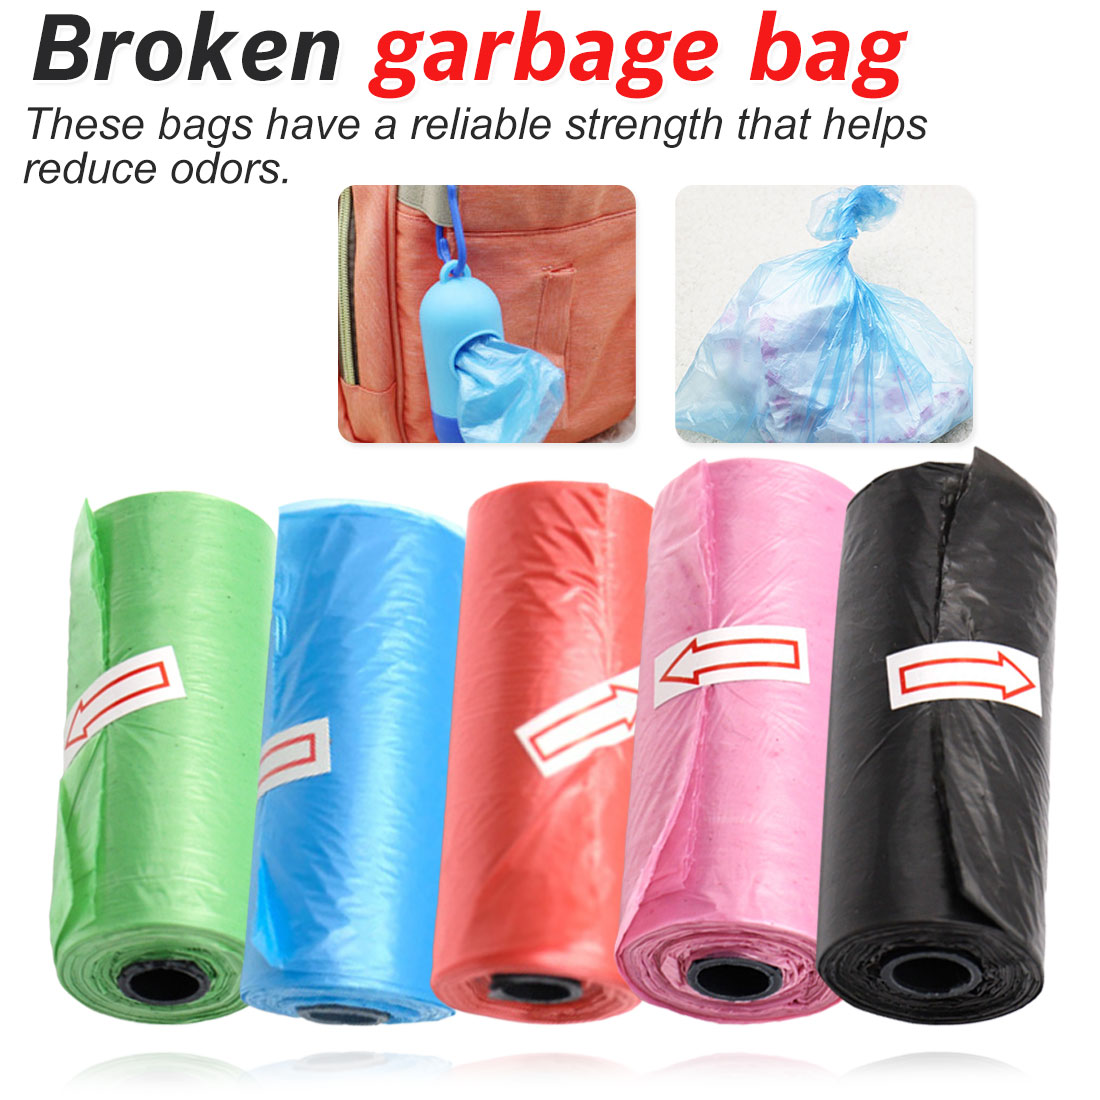 1 Roll Portable Baby Diapers Abandon Bag Roll Home Outdoor Disposable Plastic Pouches Garbage Bag Baby Stroller Accessories